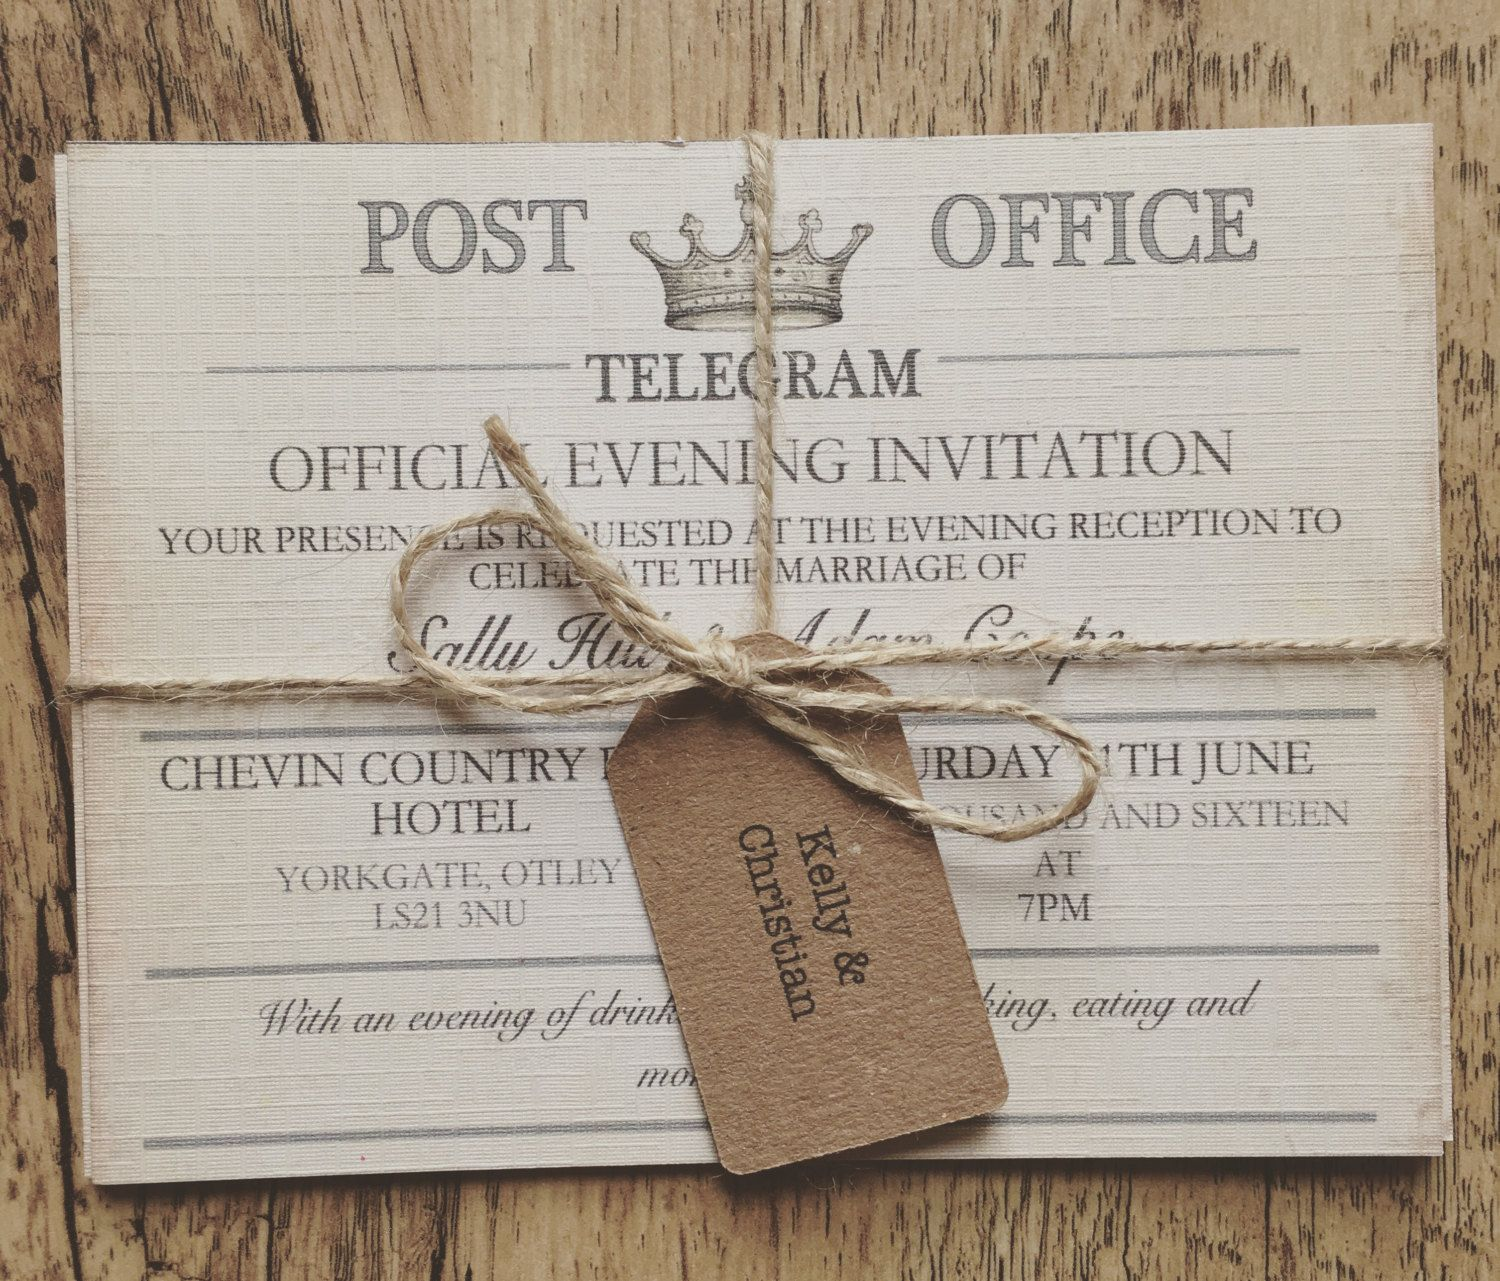 Vintage Wedding Invitations: Vintage Travel Wedding Invitation,Telegram